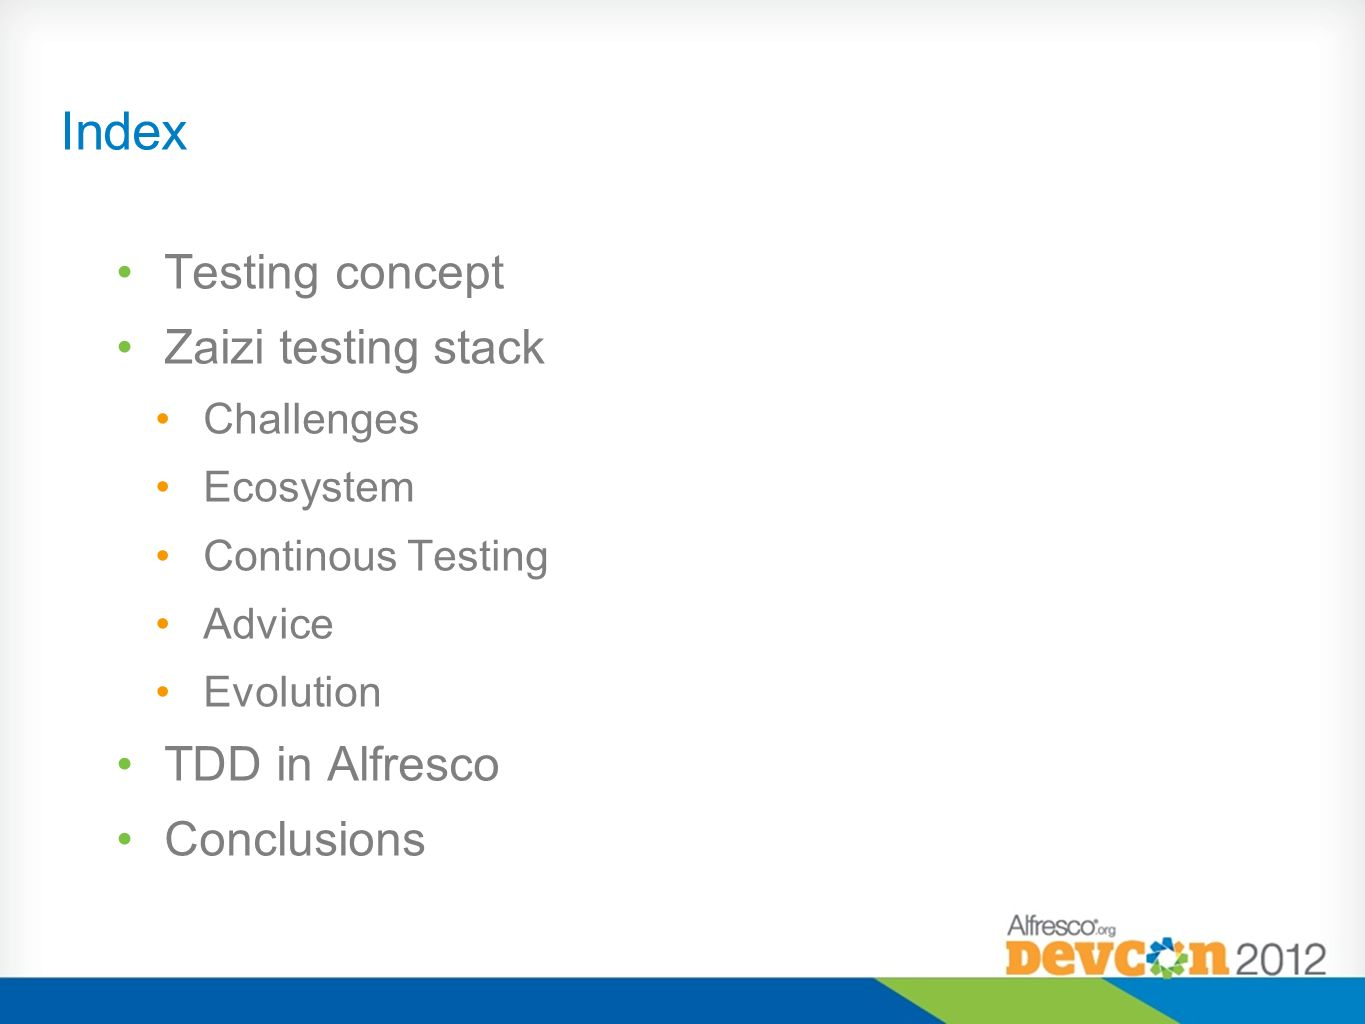 Index Testing concept Zaizi testing stack TDD in Alfresco Conclusions